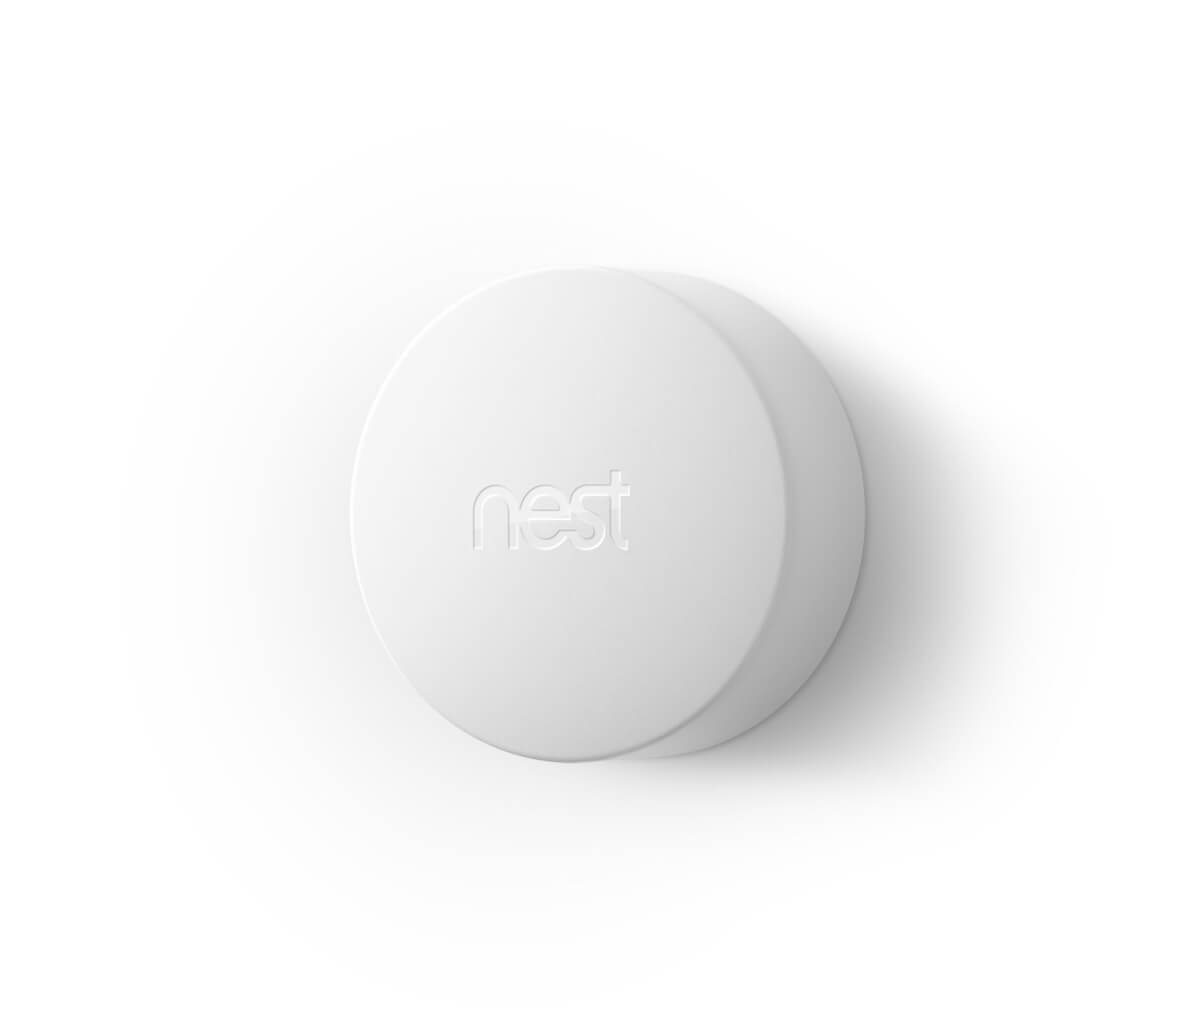 Ecobee Sensor Nest Temperature Sensor Vs Ecobee Sensor Which Works Best